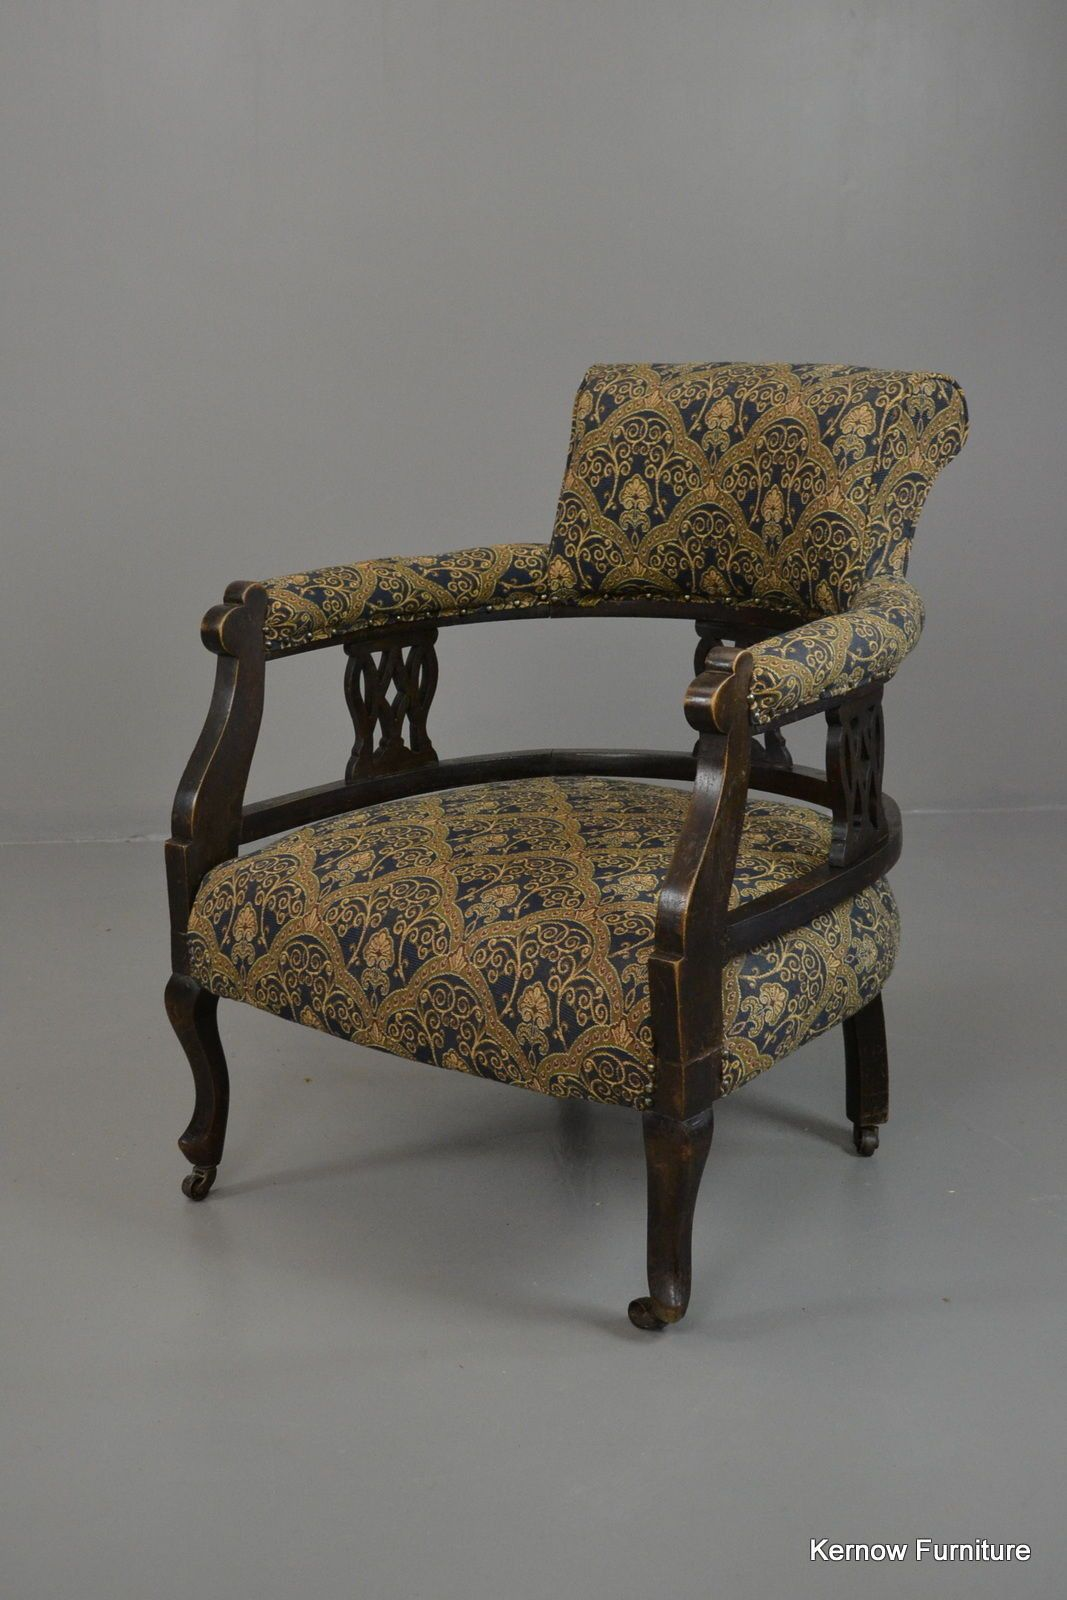 Antique Edwardian Small Armchair - Kernow Furniture ...